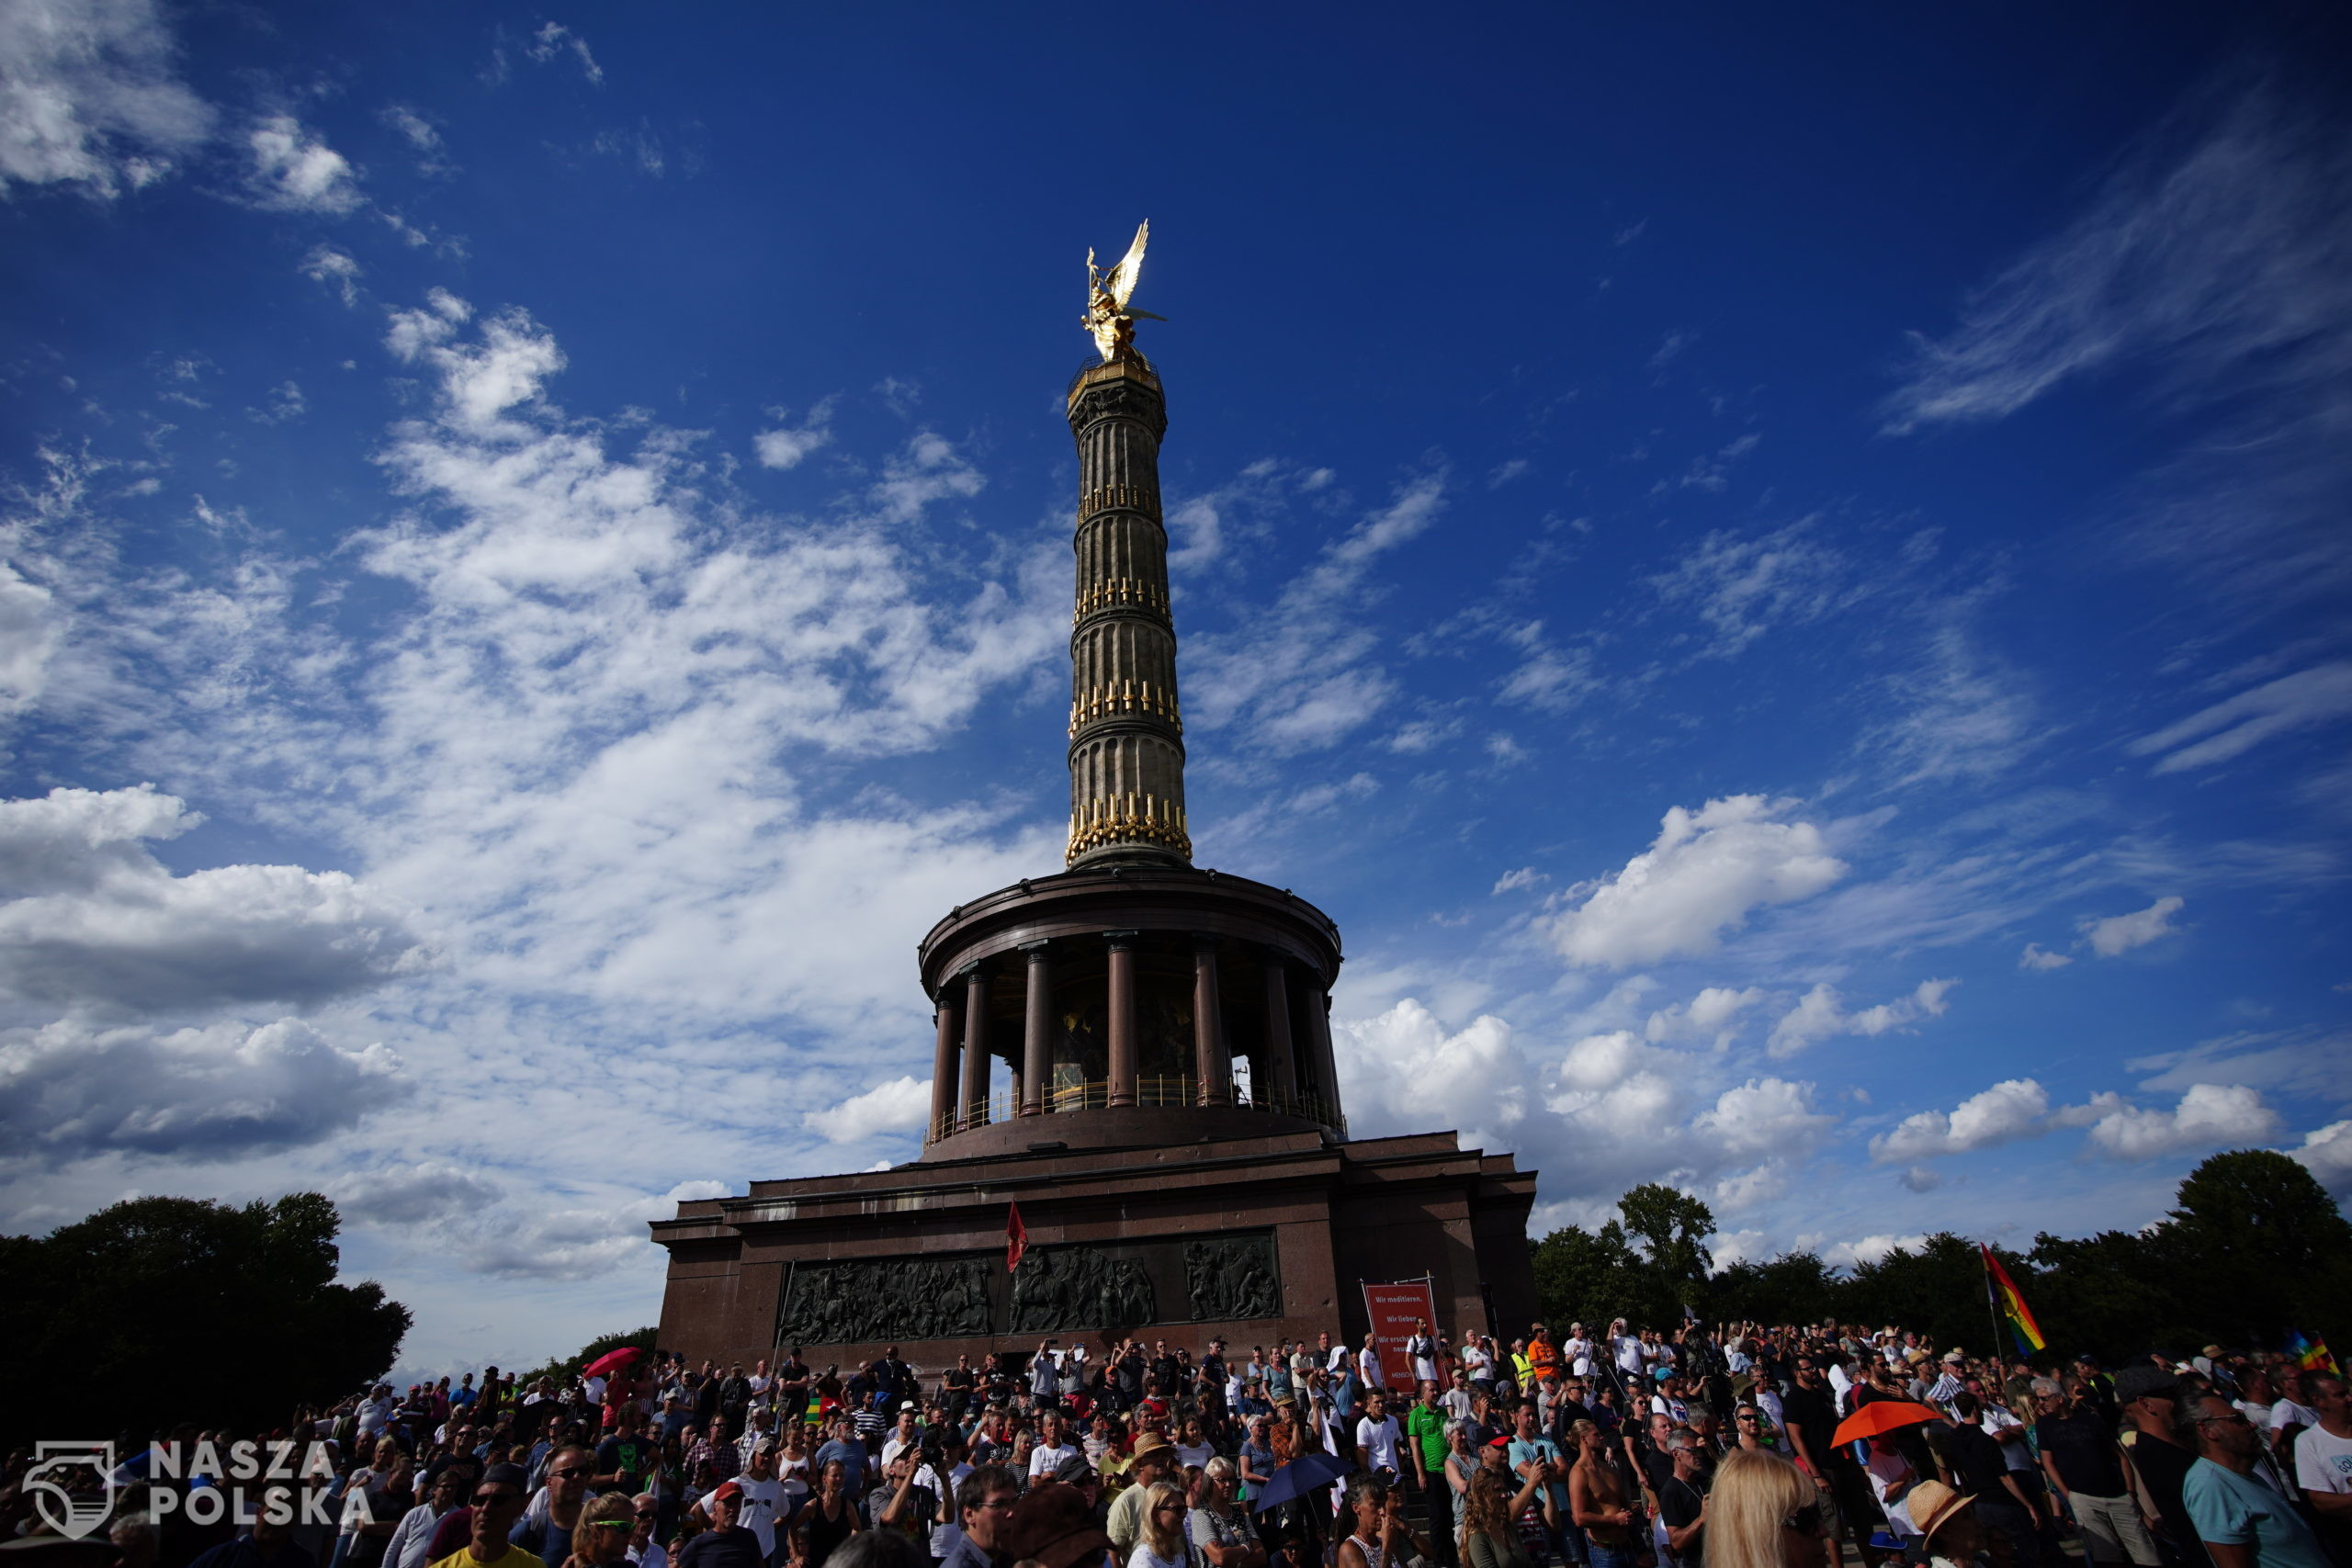 epa08633848 Demonstrators gather during a protest against coronavirus pandemic regulations in front of the Victory Column in Berlin, Germany, 29 August 2020. The initiative 'Querdenken 711' and an alliance of right wing groups have called to demonstrate against coronavirus regulations like face mask wearing, in Berlin. Meanwhile forbidden, Berlin administrative court and higher administrative court allowed the demonstration to take place under certain requirements. Police announced to stop the demonstration when conditions were not met.  EPA/CLEMENS BILAN  Dostawca: PAP/EPA.